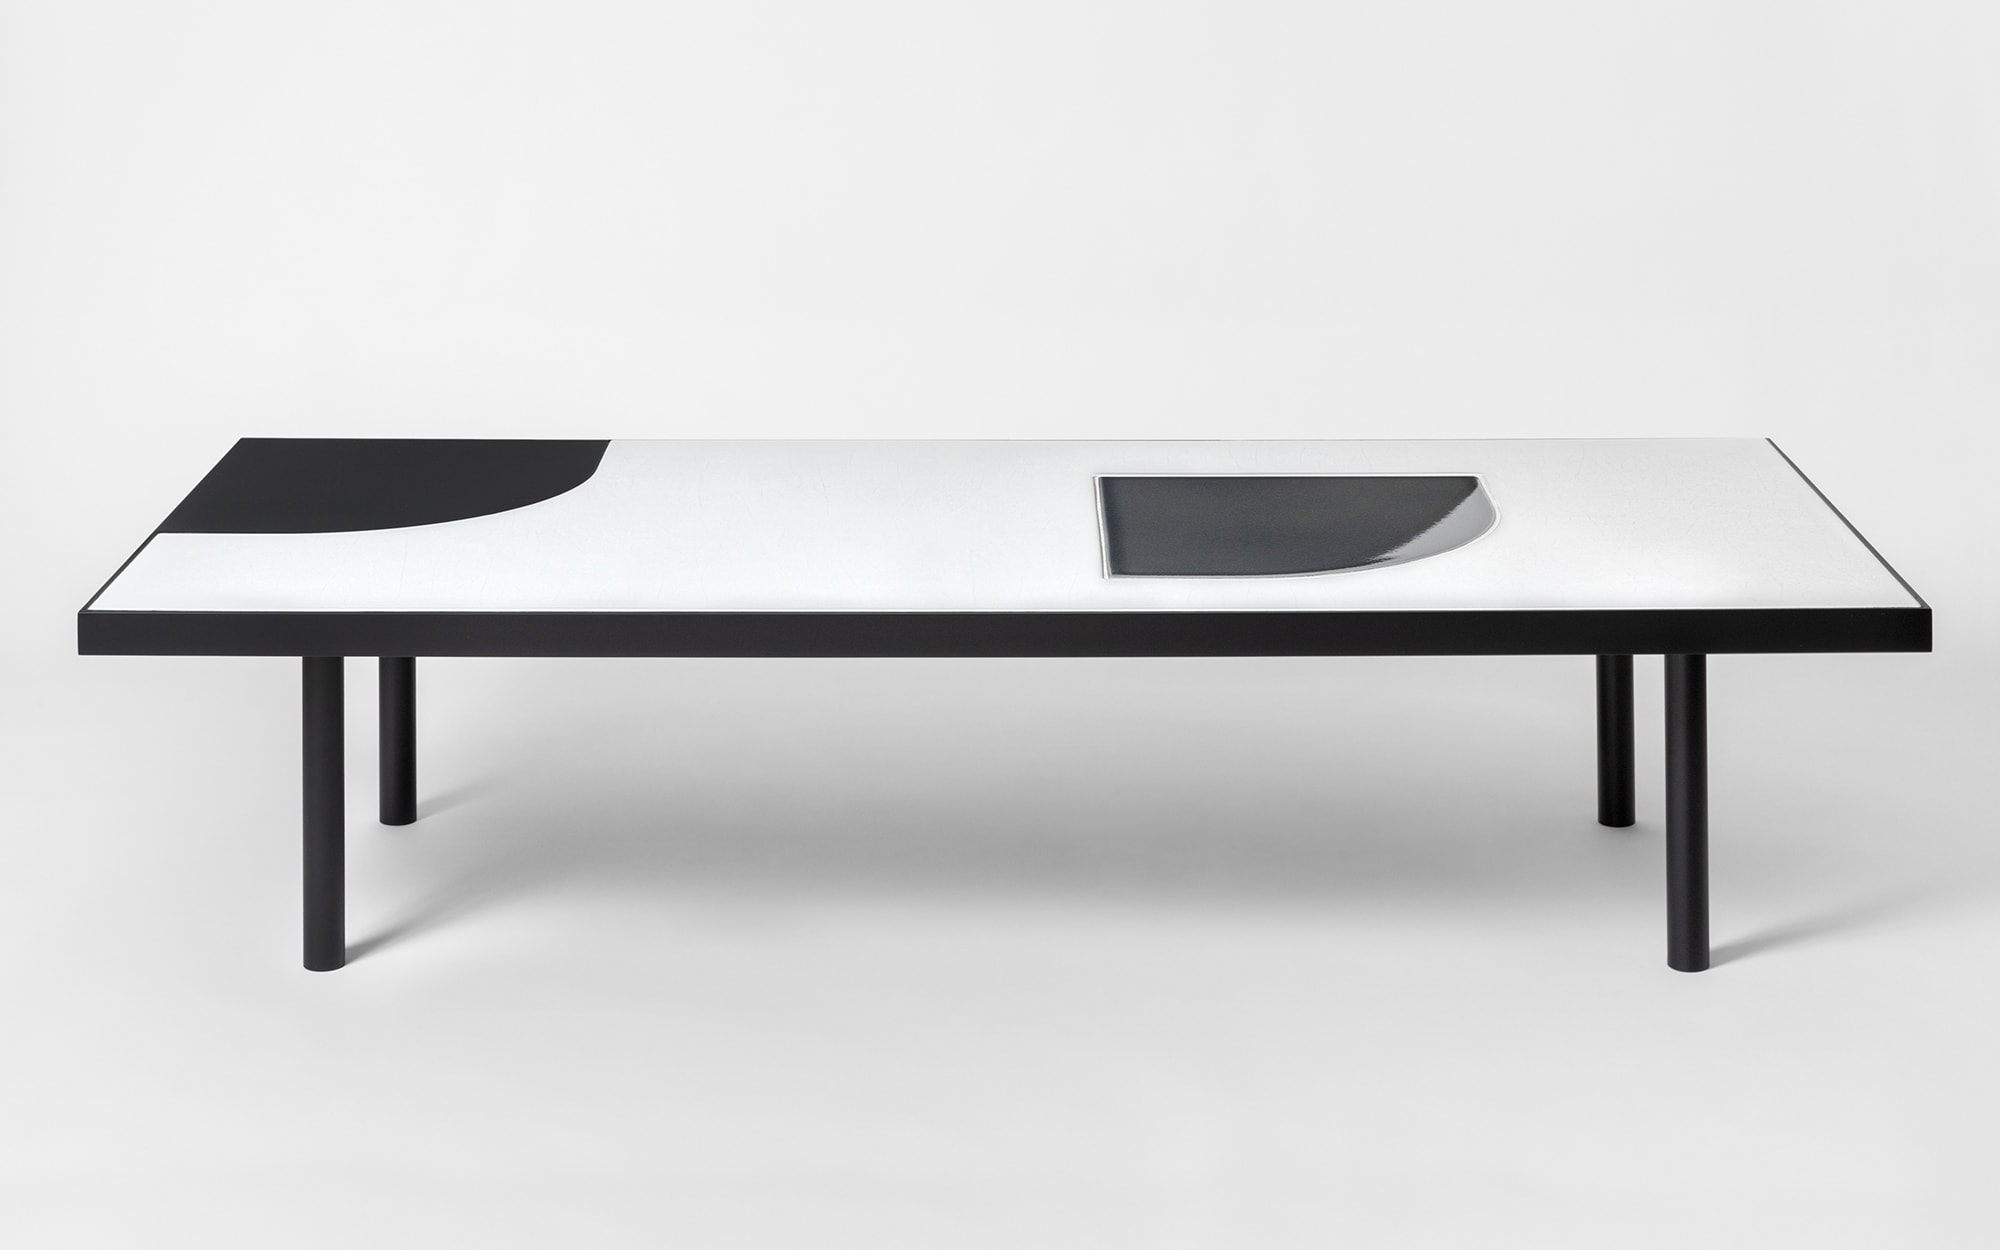 Pierre Charpin Translation Quadro Coffee Table